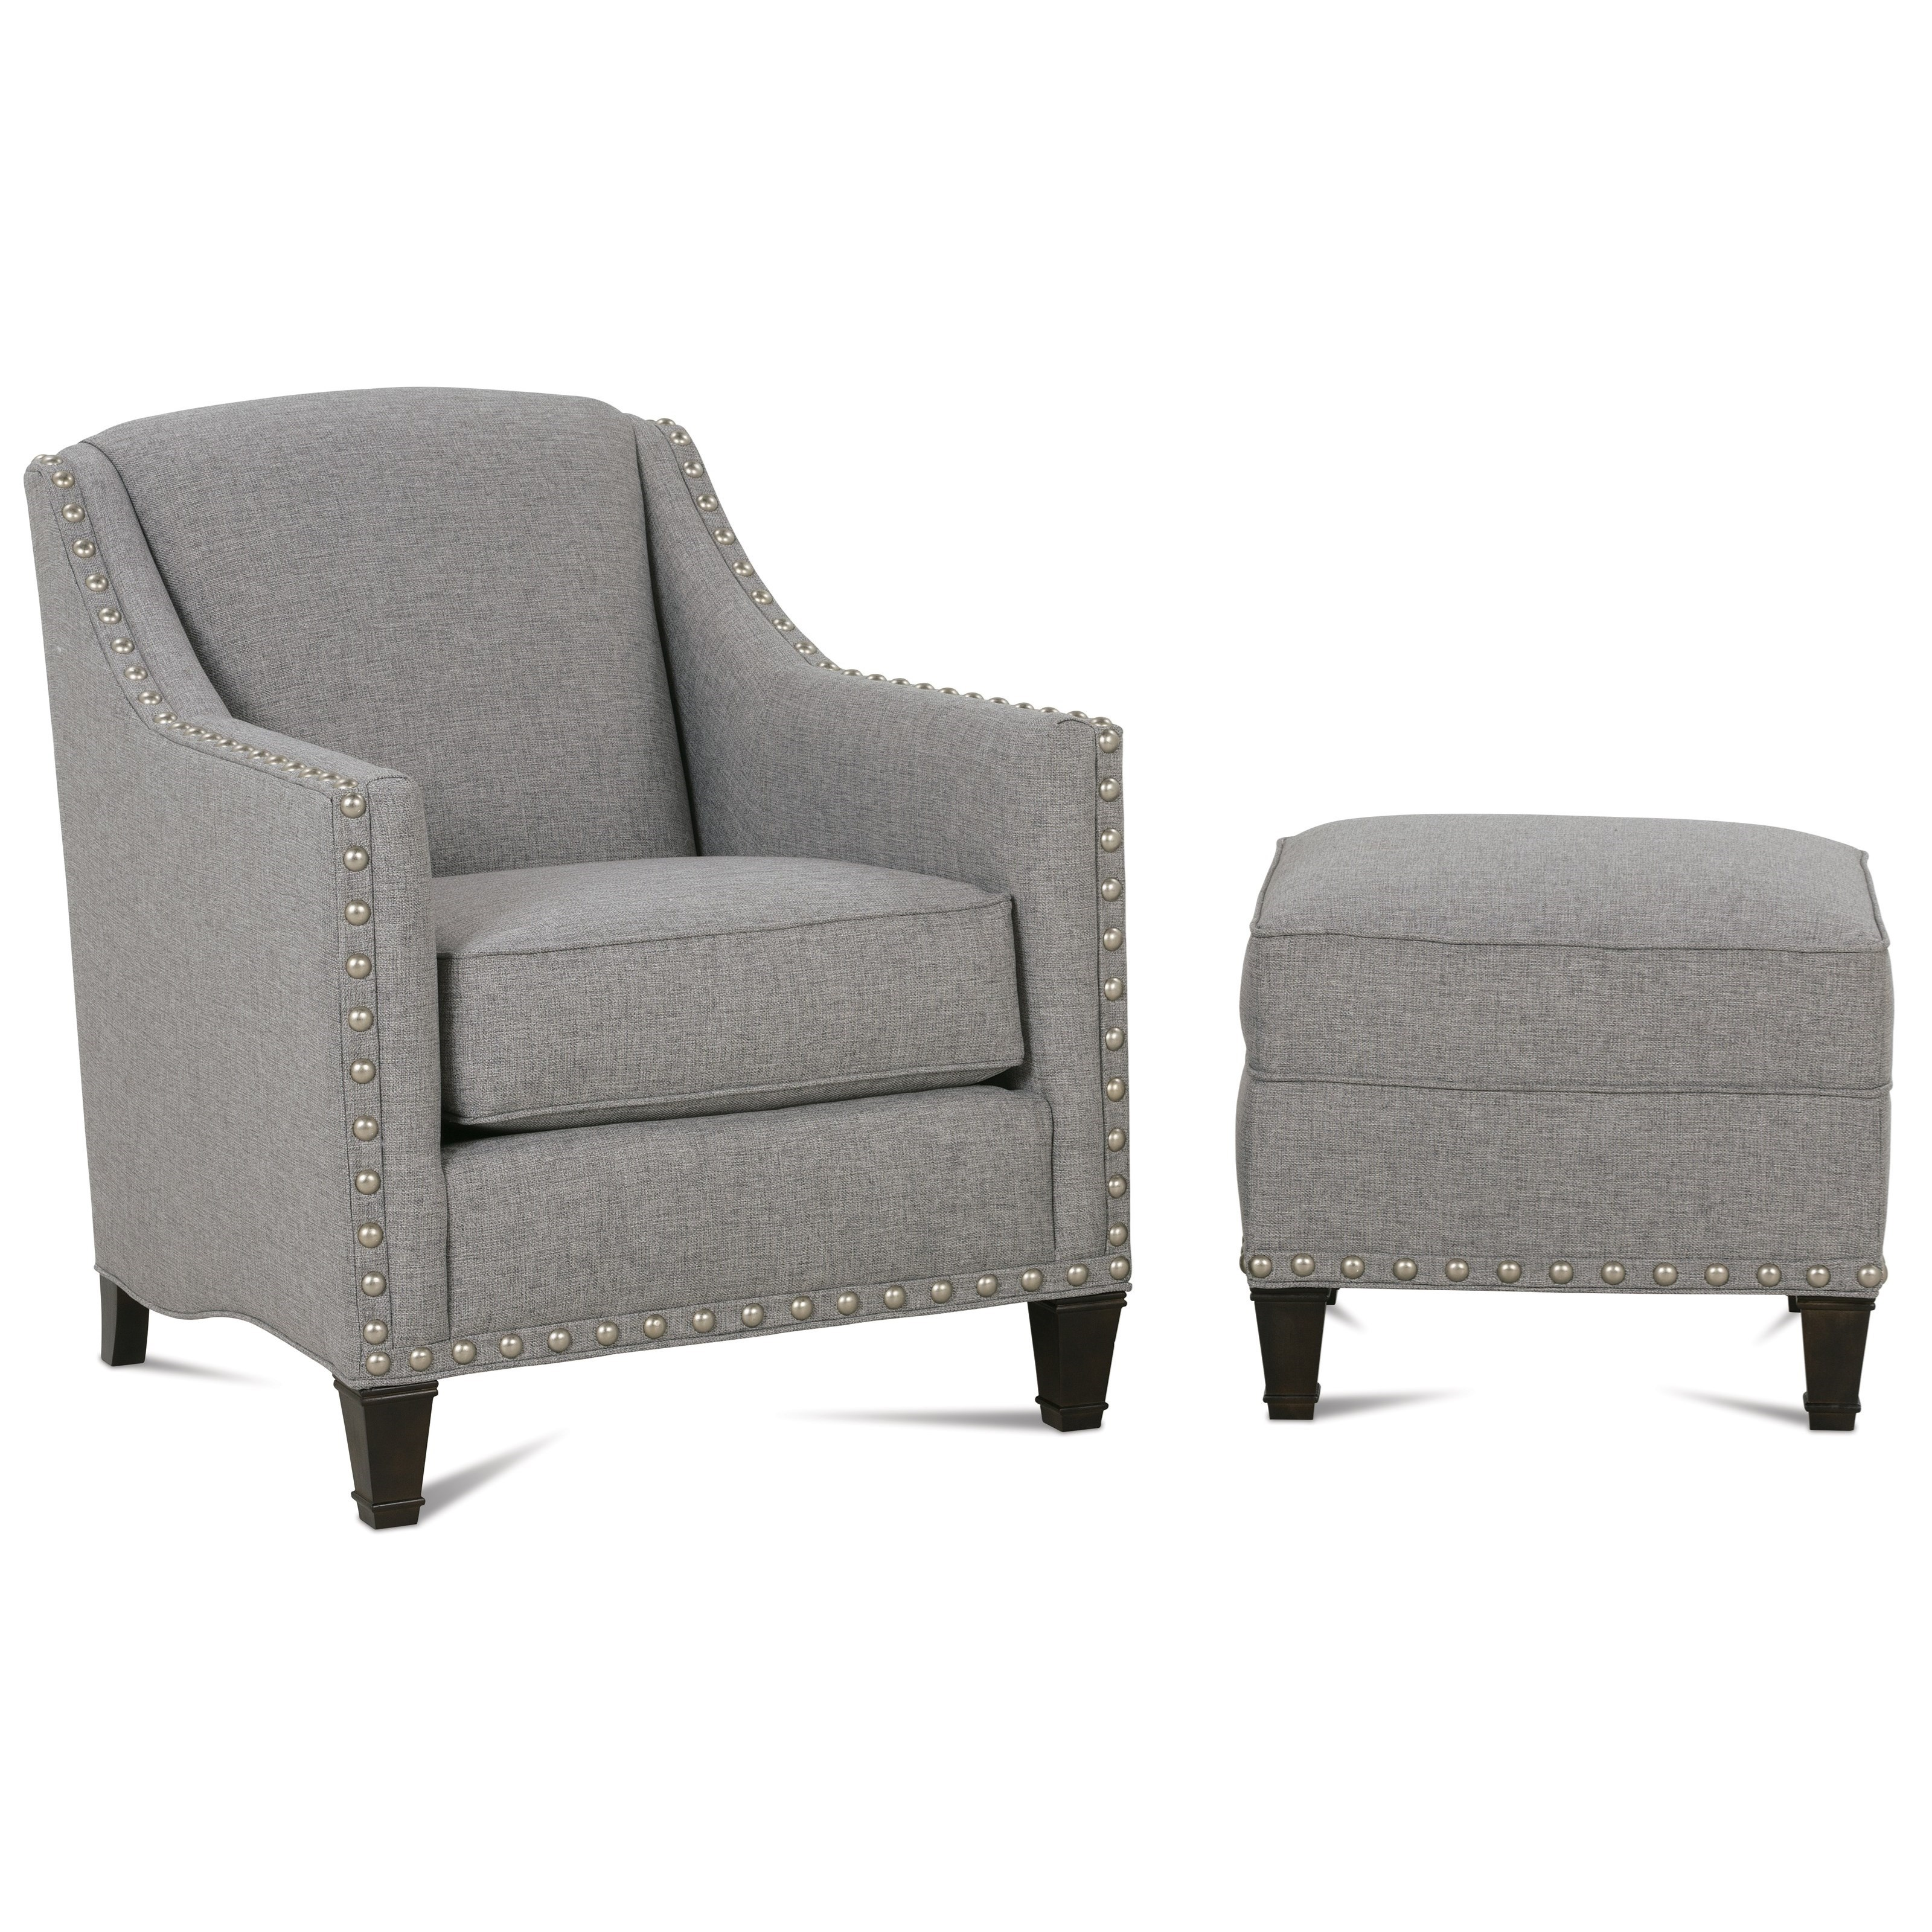 Traditional Upholstered Chair & Ottoman